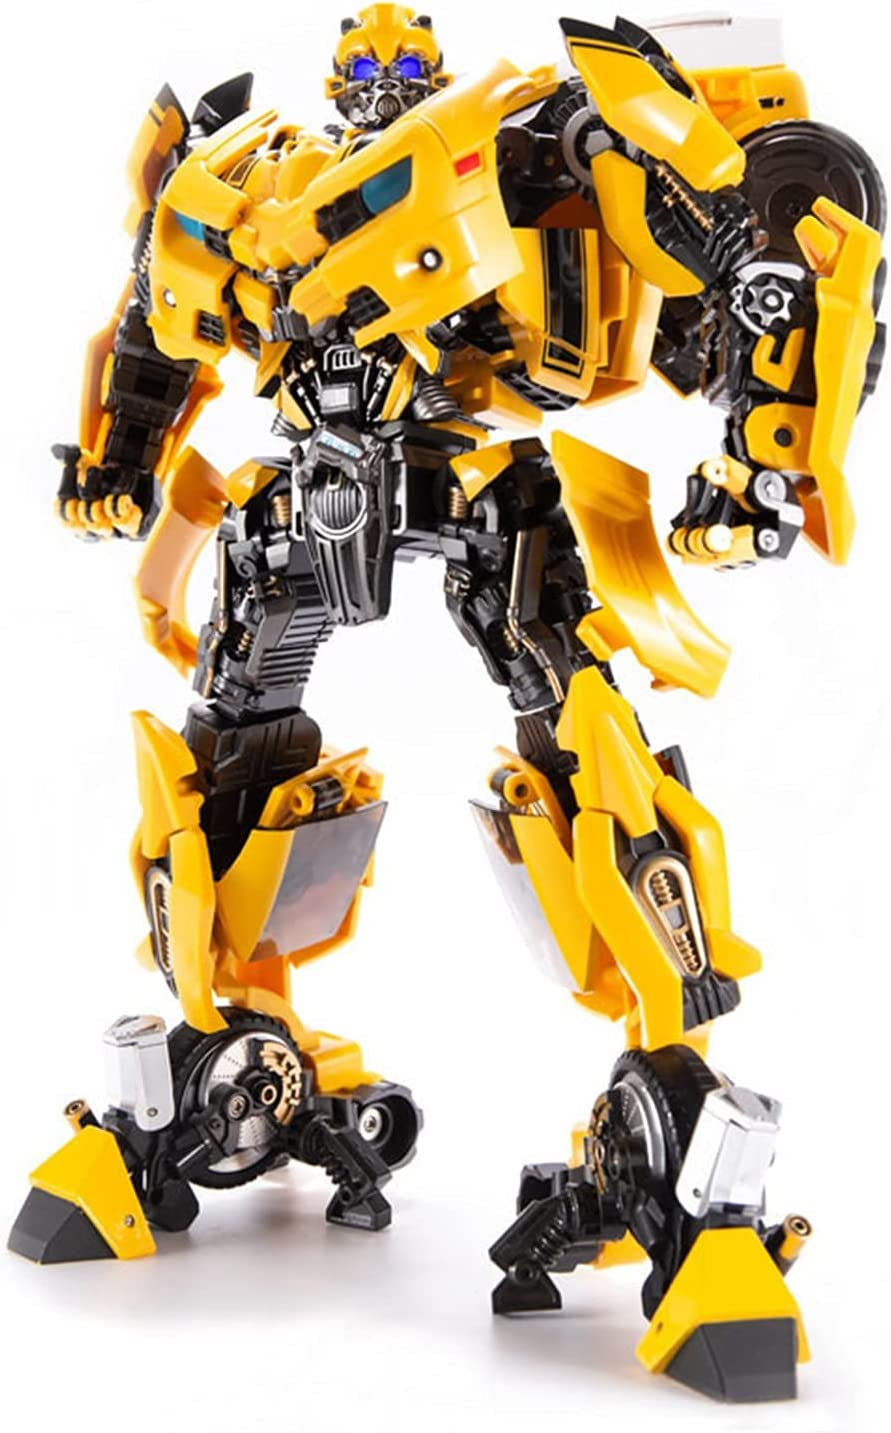 MKLL Transformer Toys Bumblebee Max 53% OFF BB-01 Outstanding Party Figures Action Third